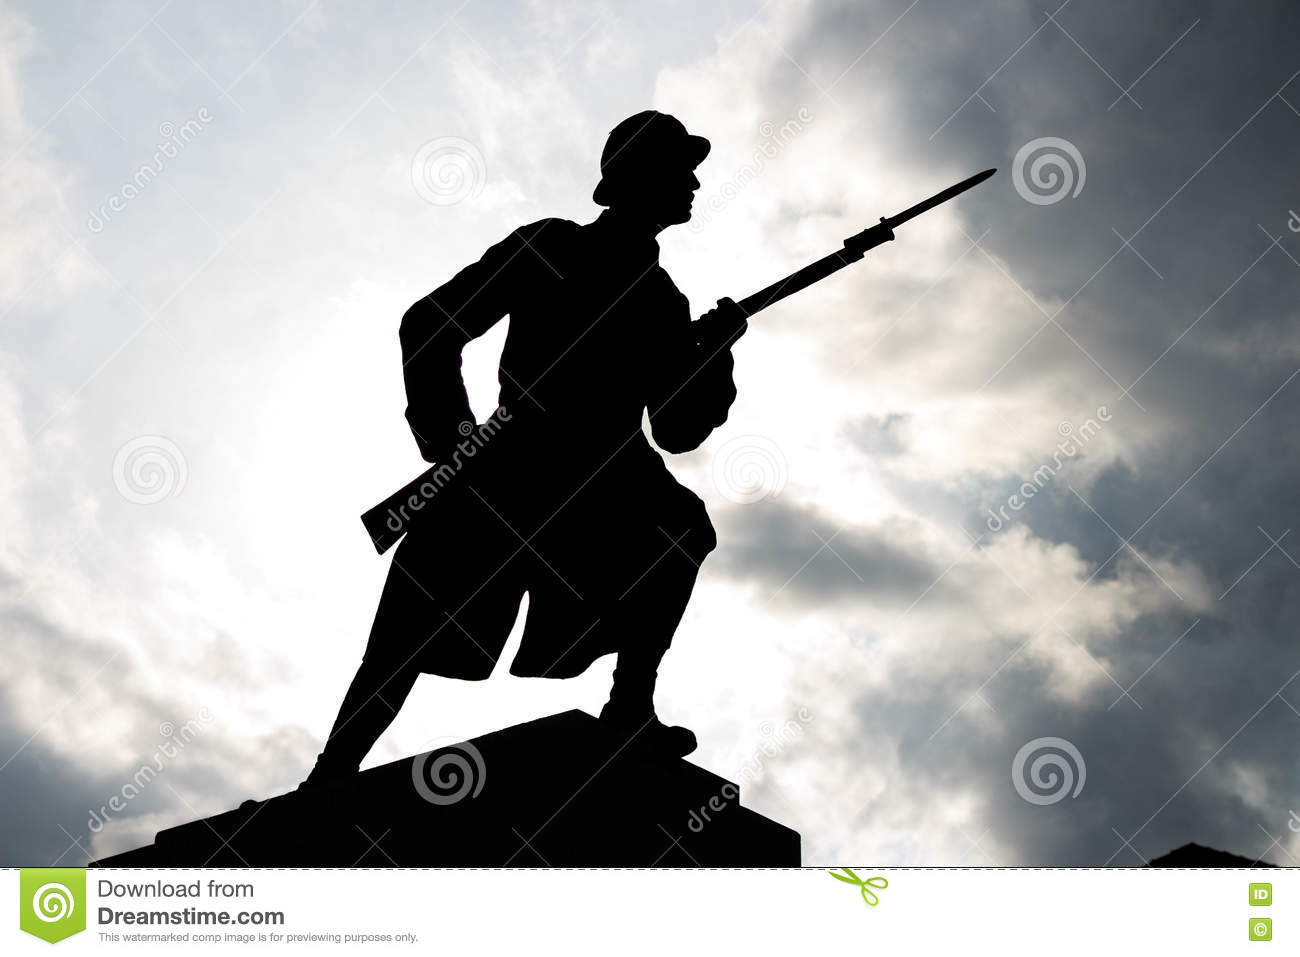 Soldier Silhouette under cloudy sky